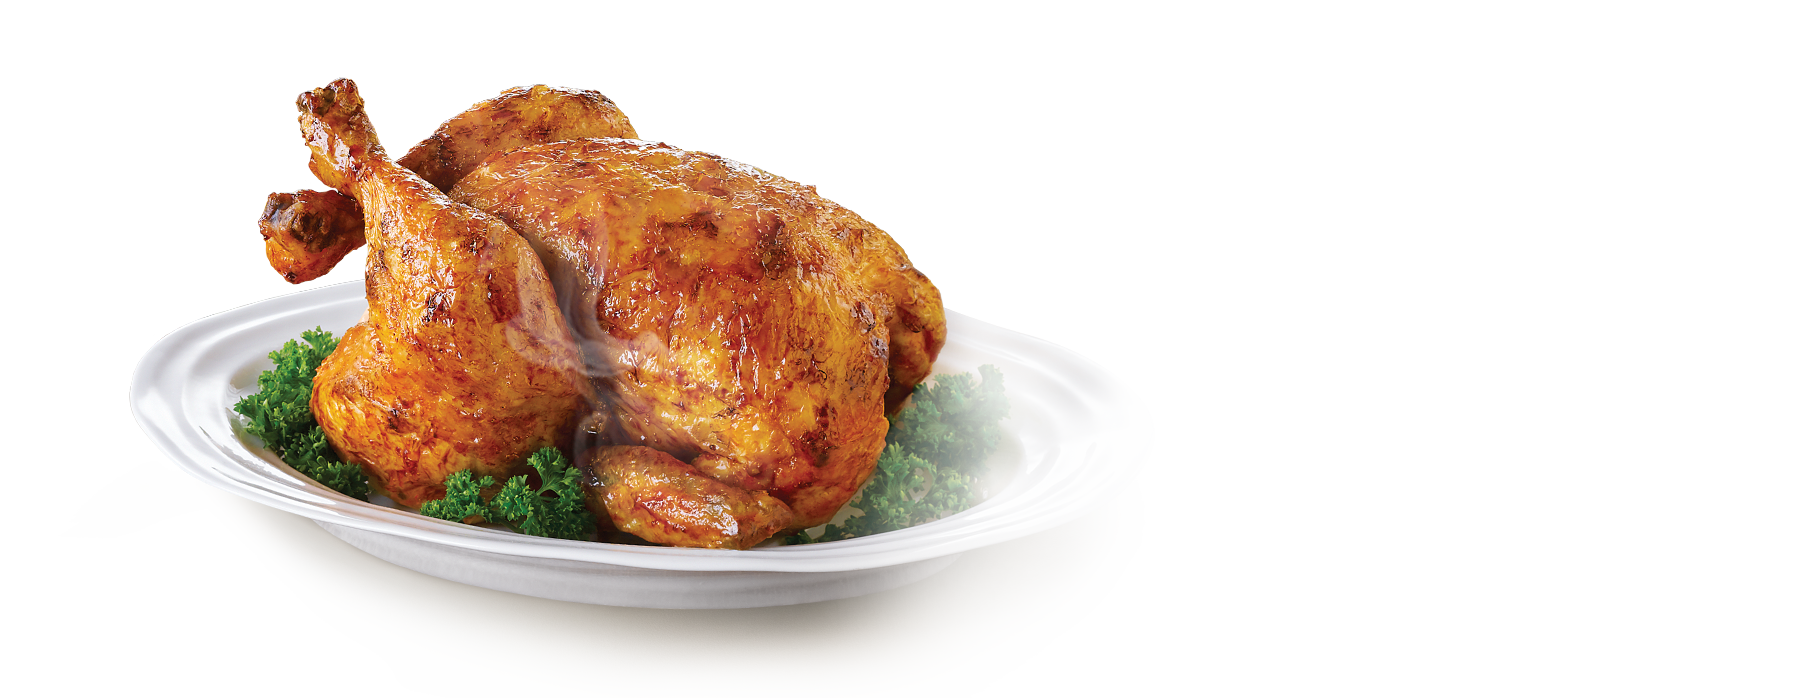 Cooked chicken png. Fried images grill free